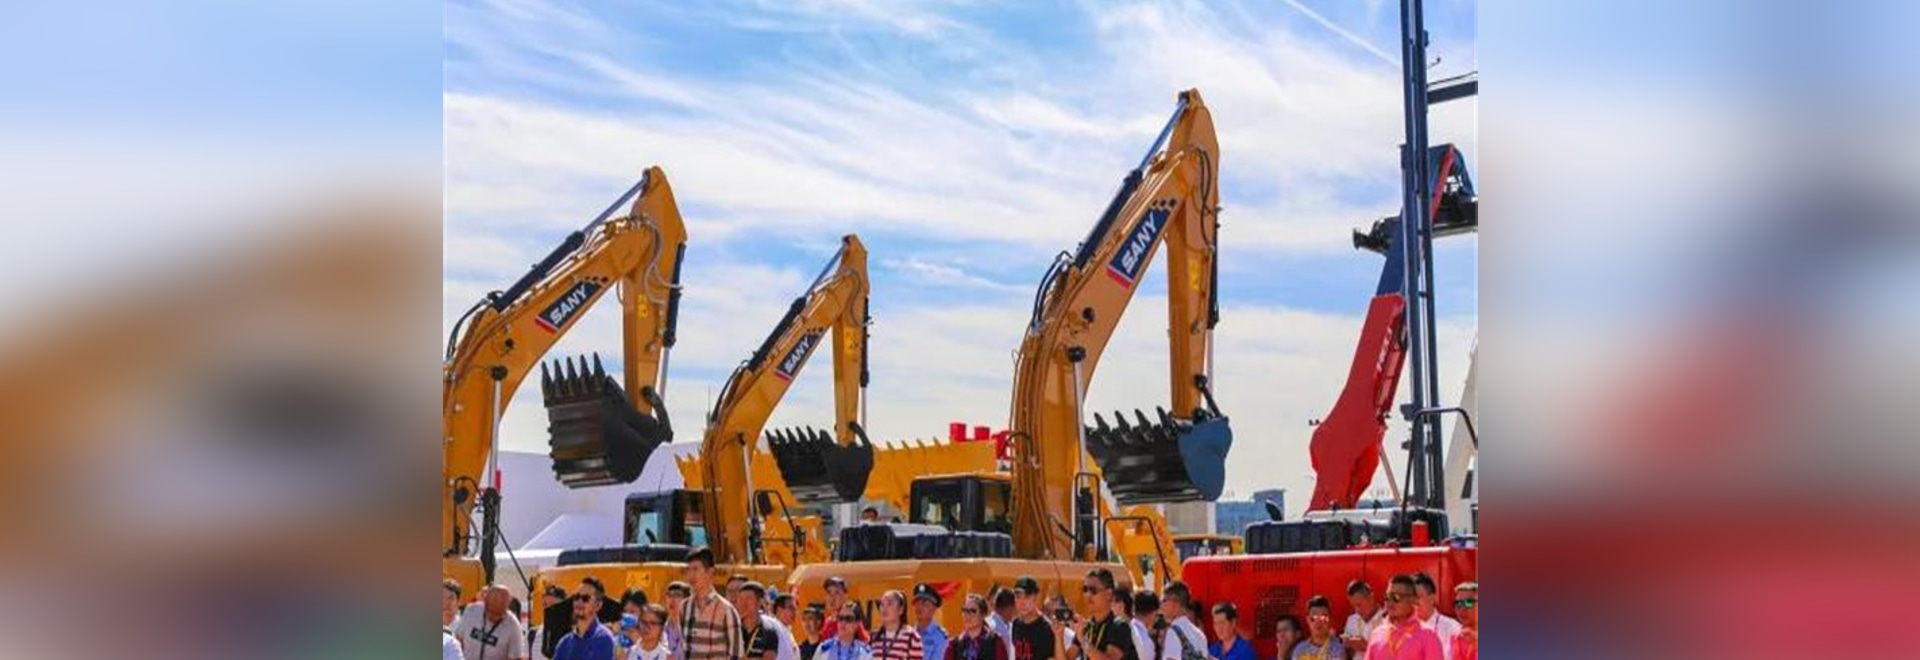 New Sany catches eyes at China BICES 2017